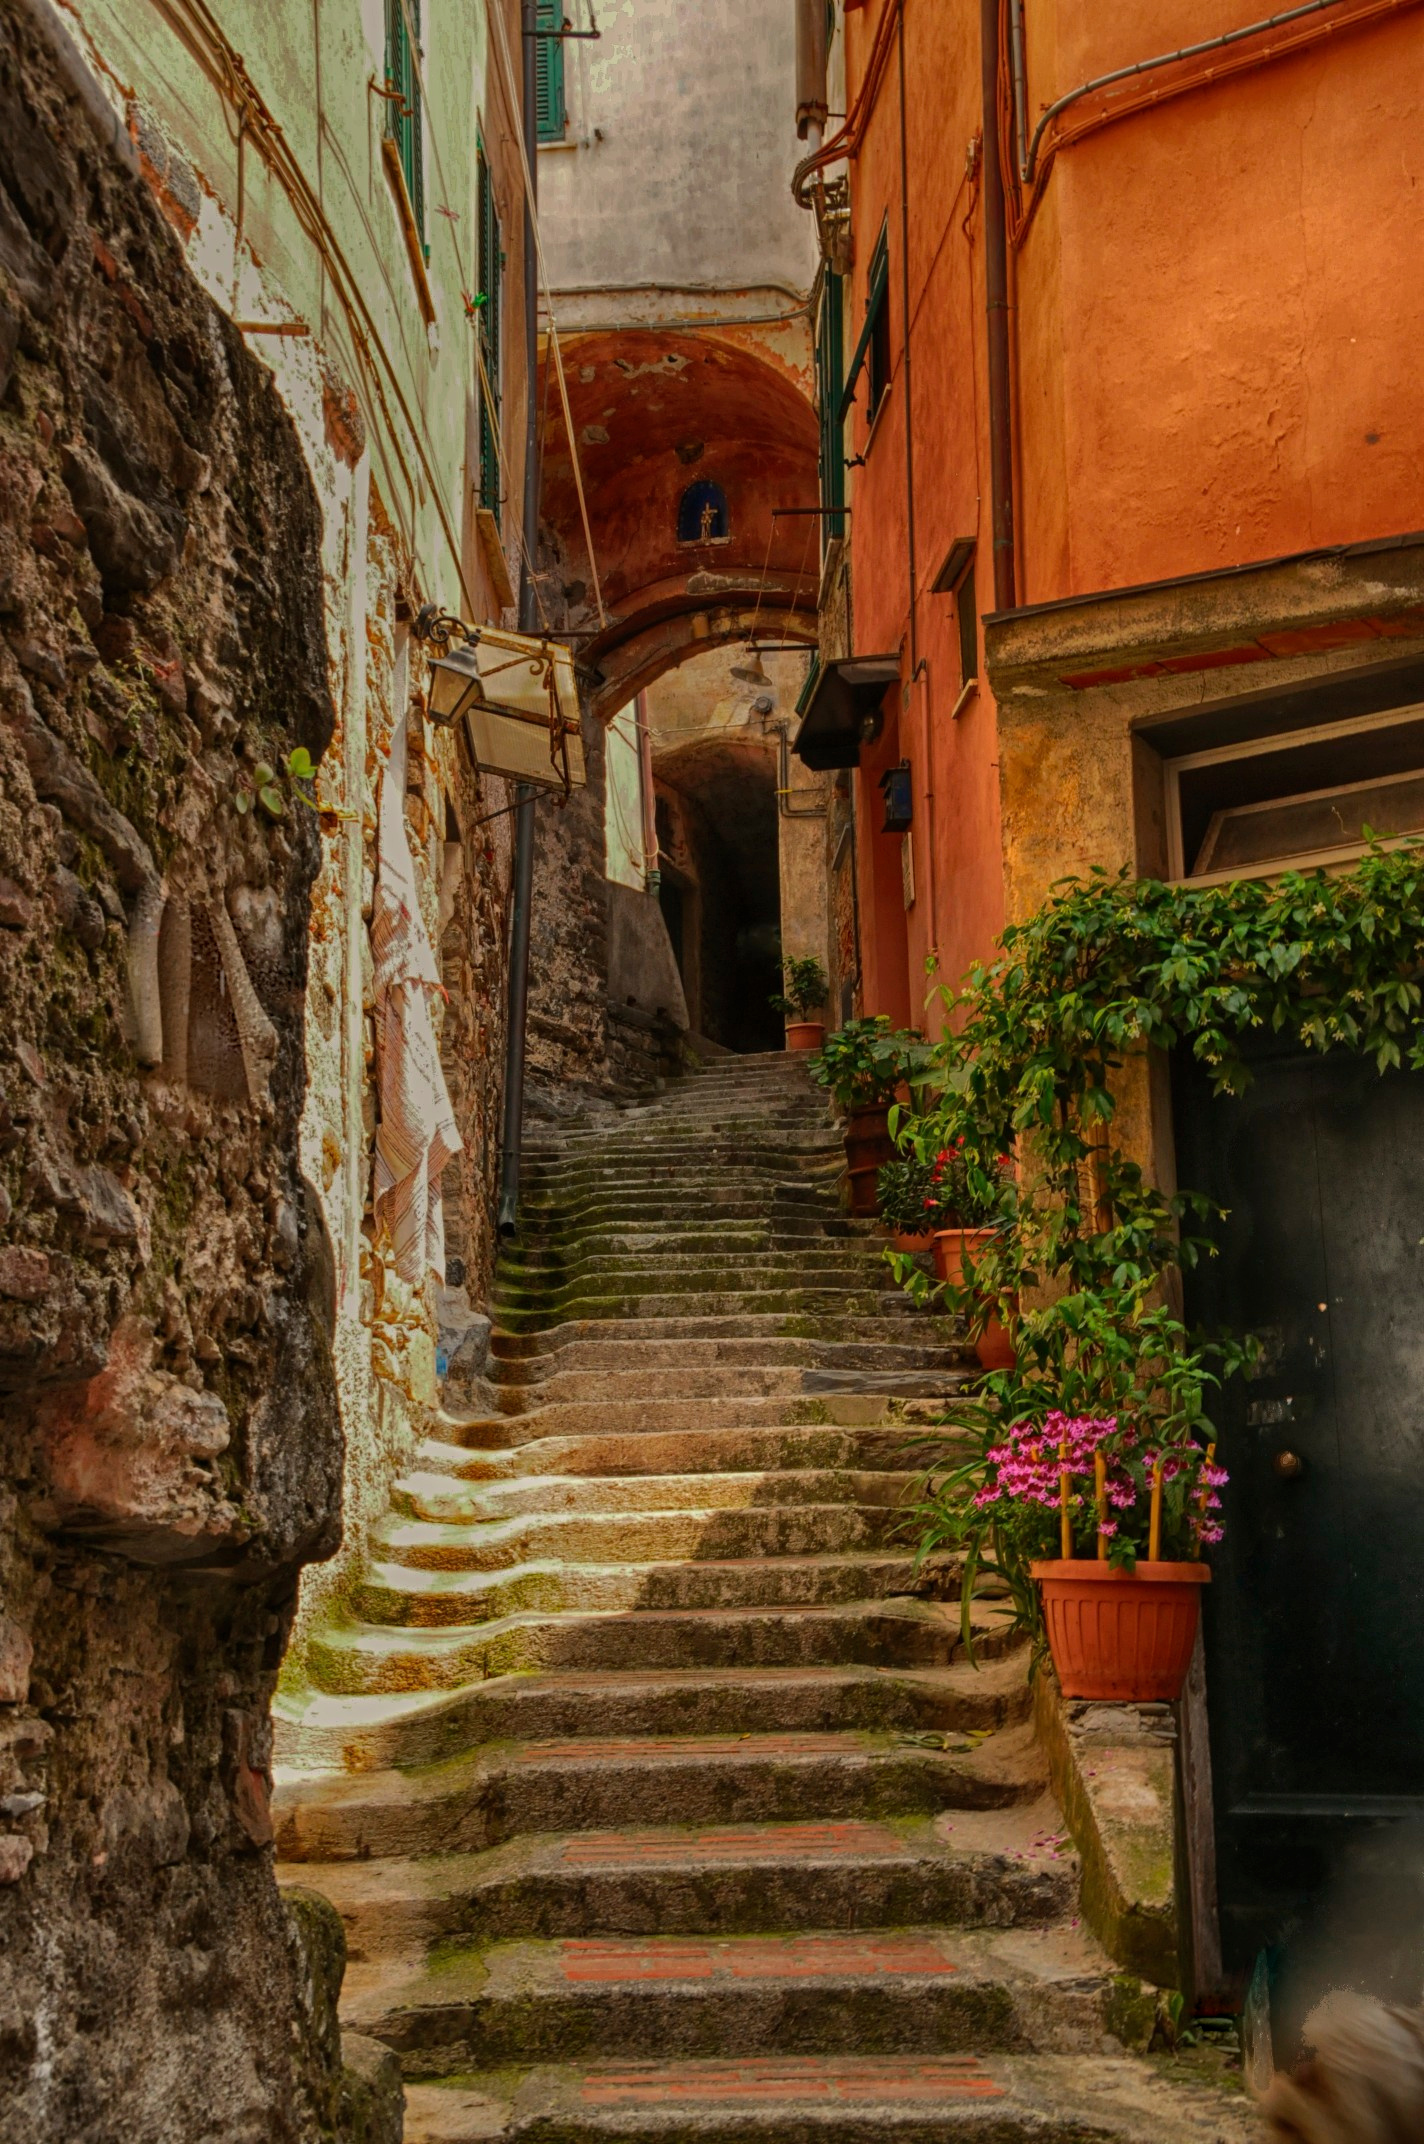 maria poole - Italy 11 second 045_HDR (1).jpg